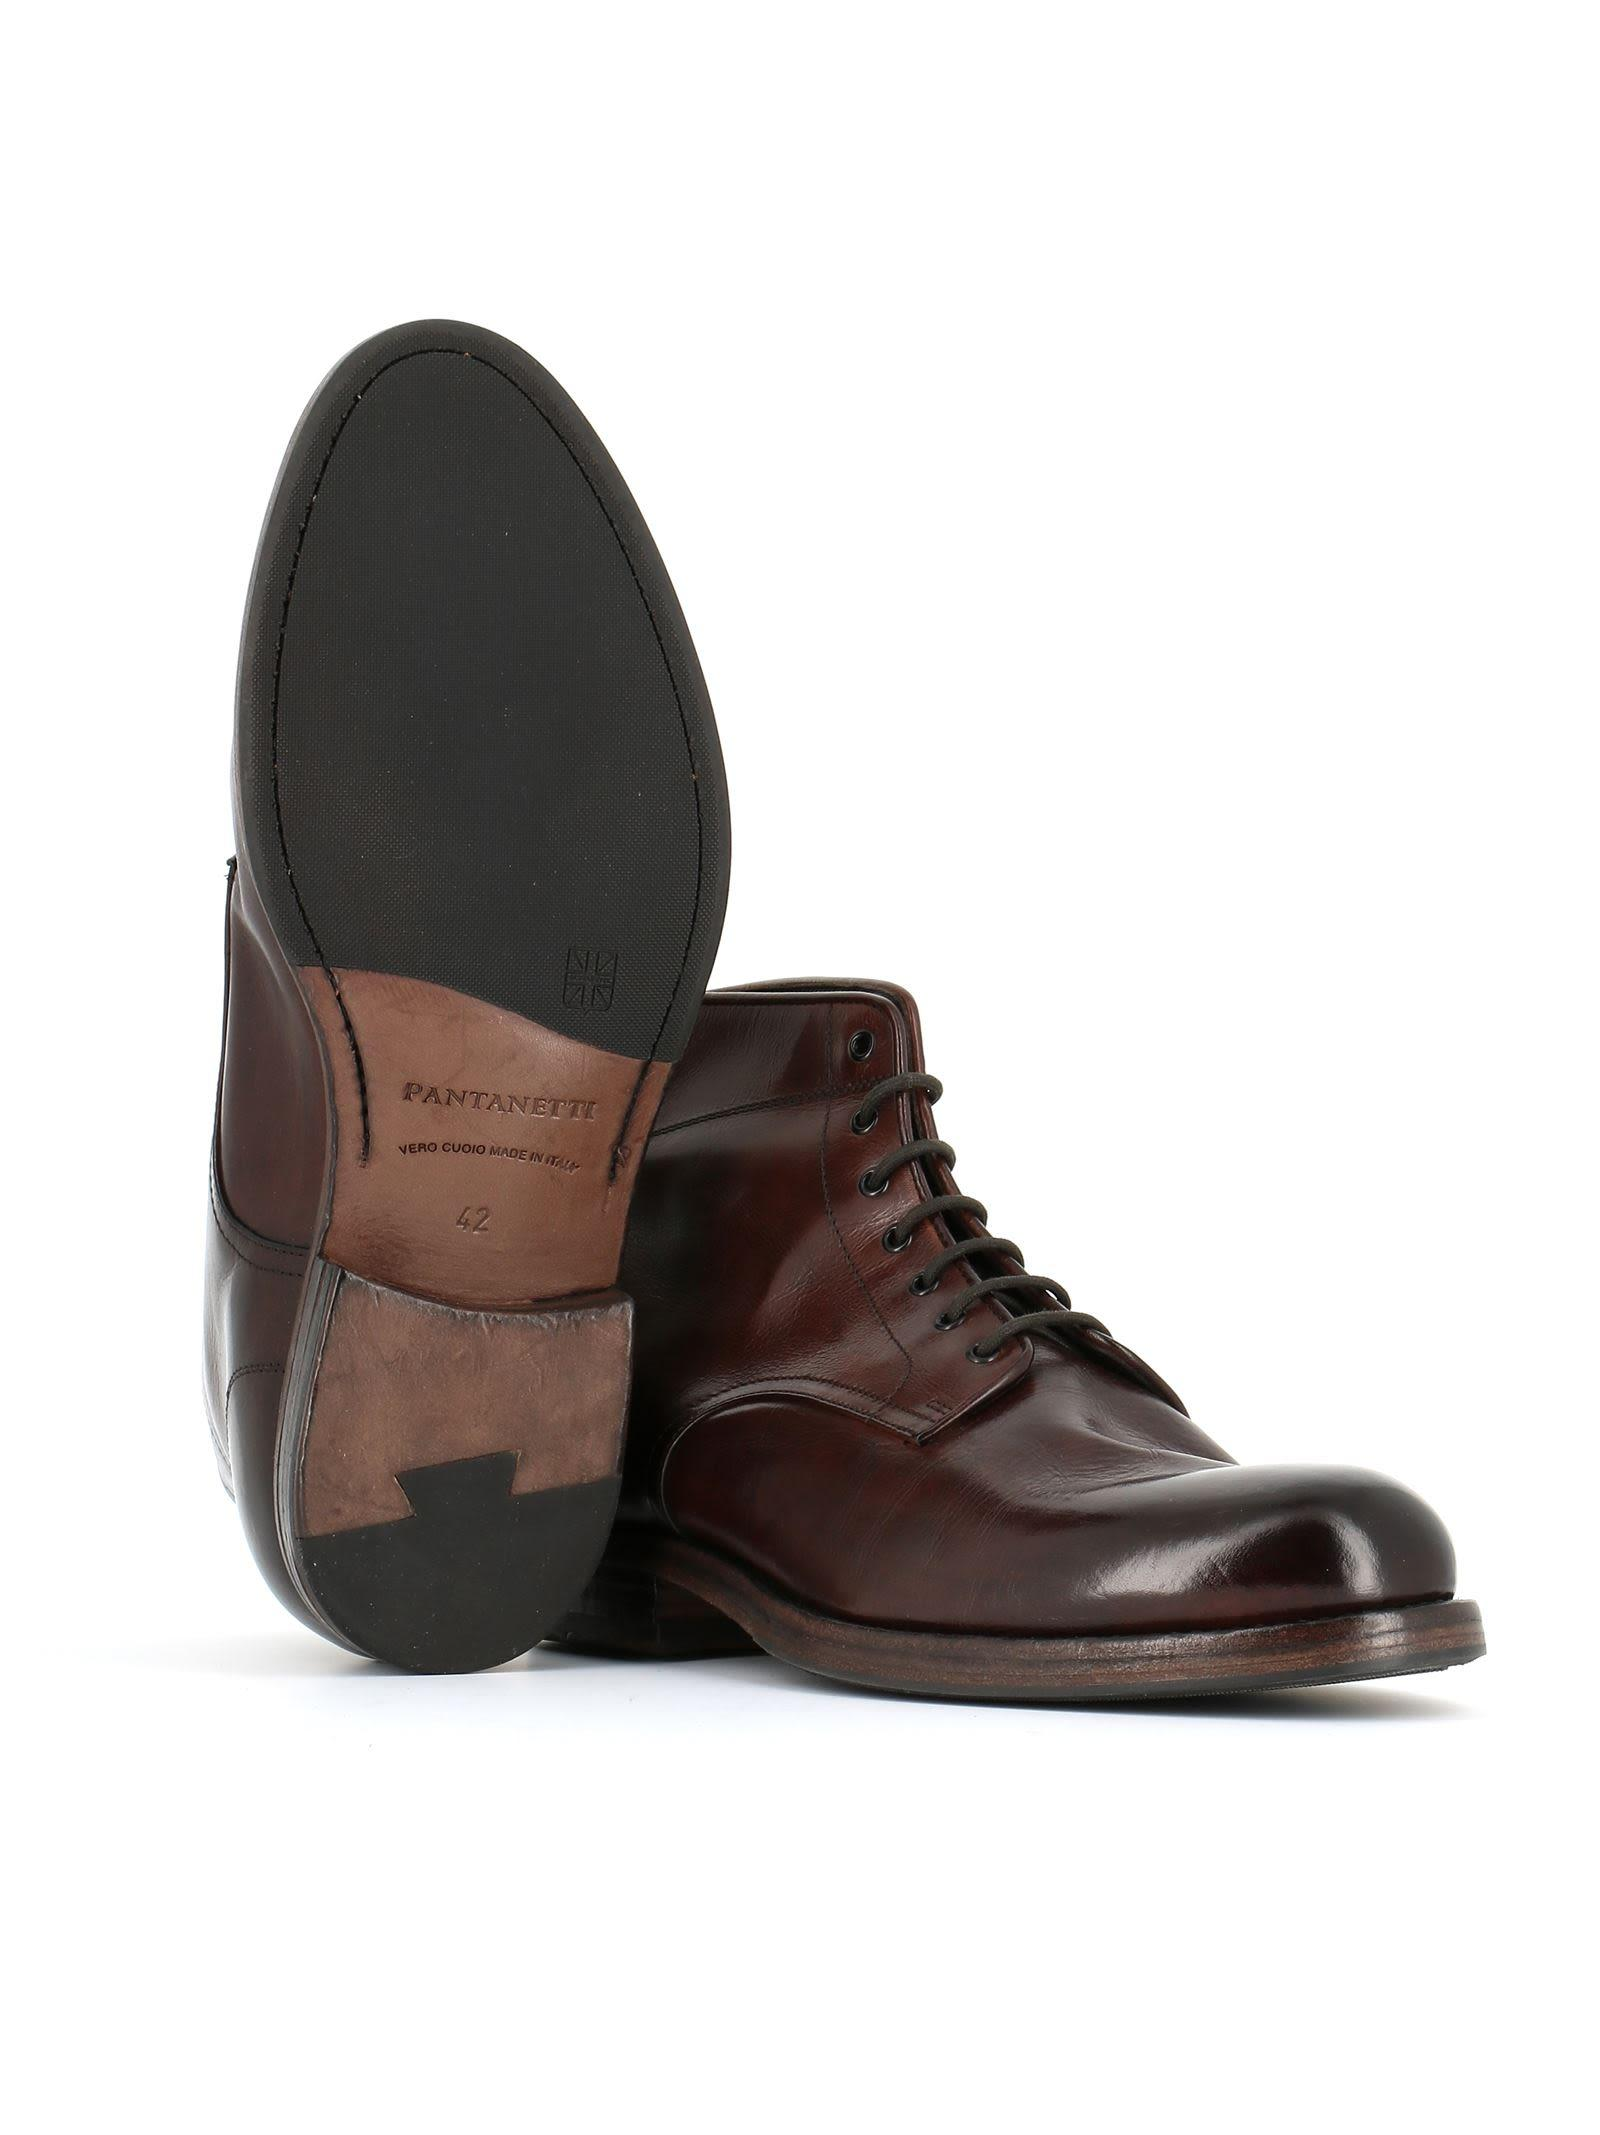 Pantanetti 10911d Lace-up Boots In Brown